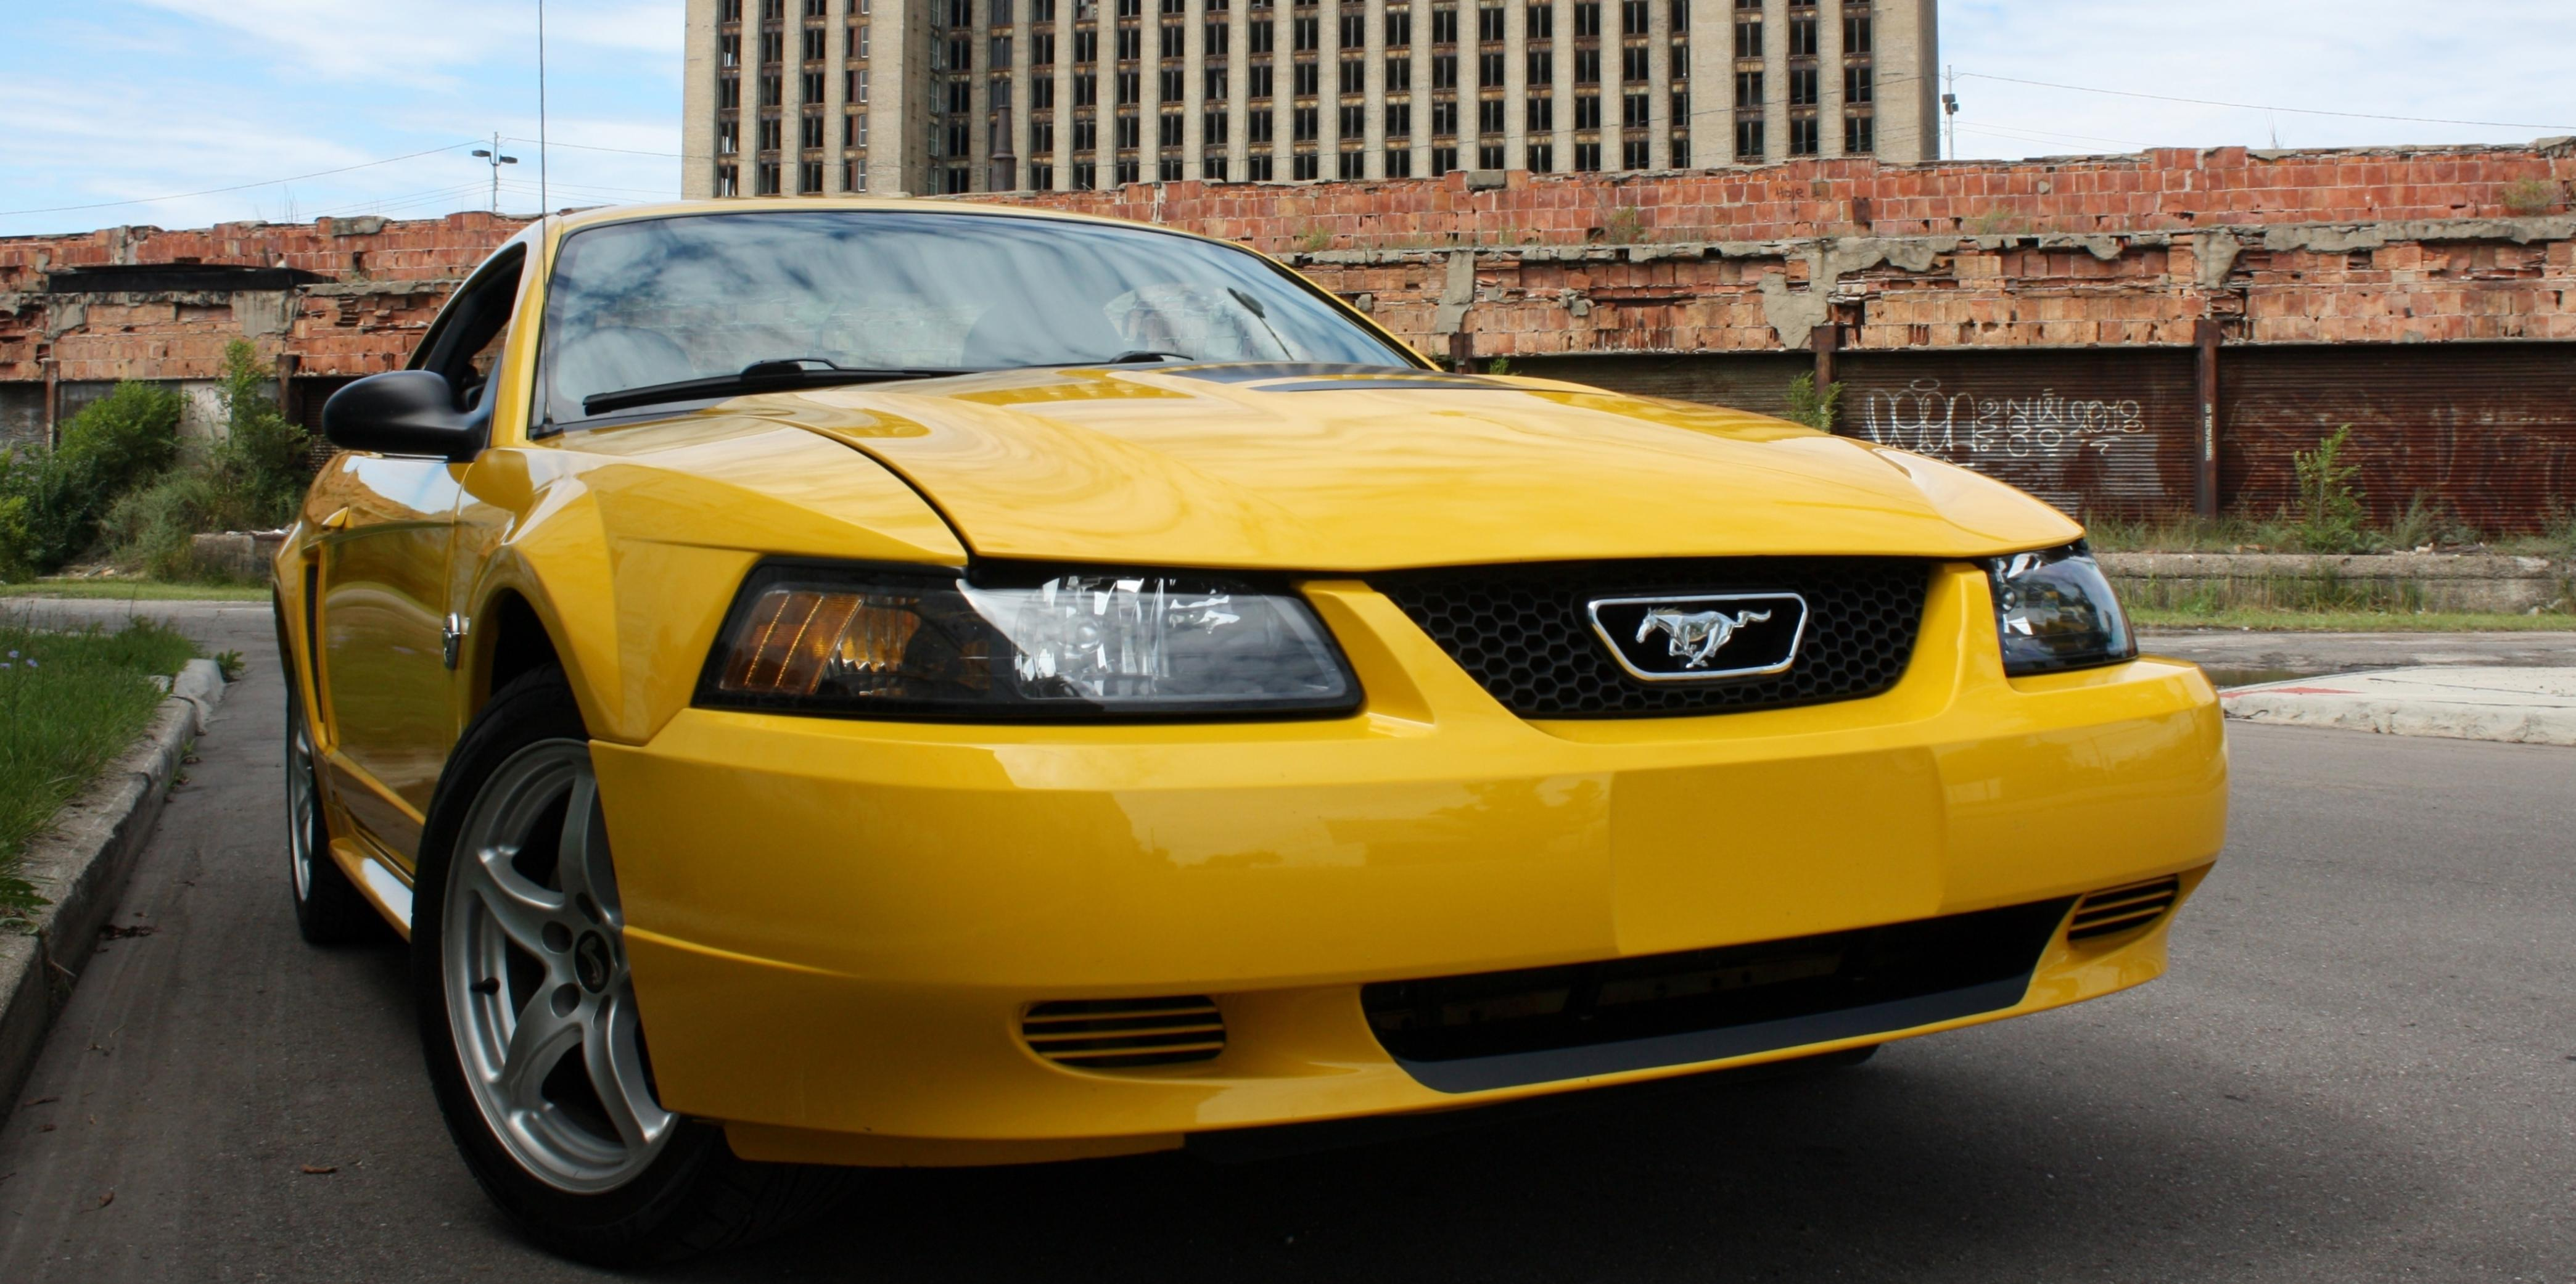 t_rog_22 2004 Ford Mustang